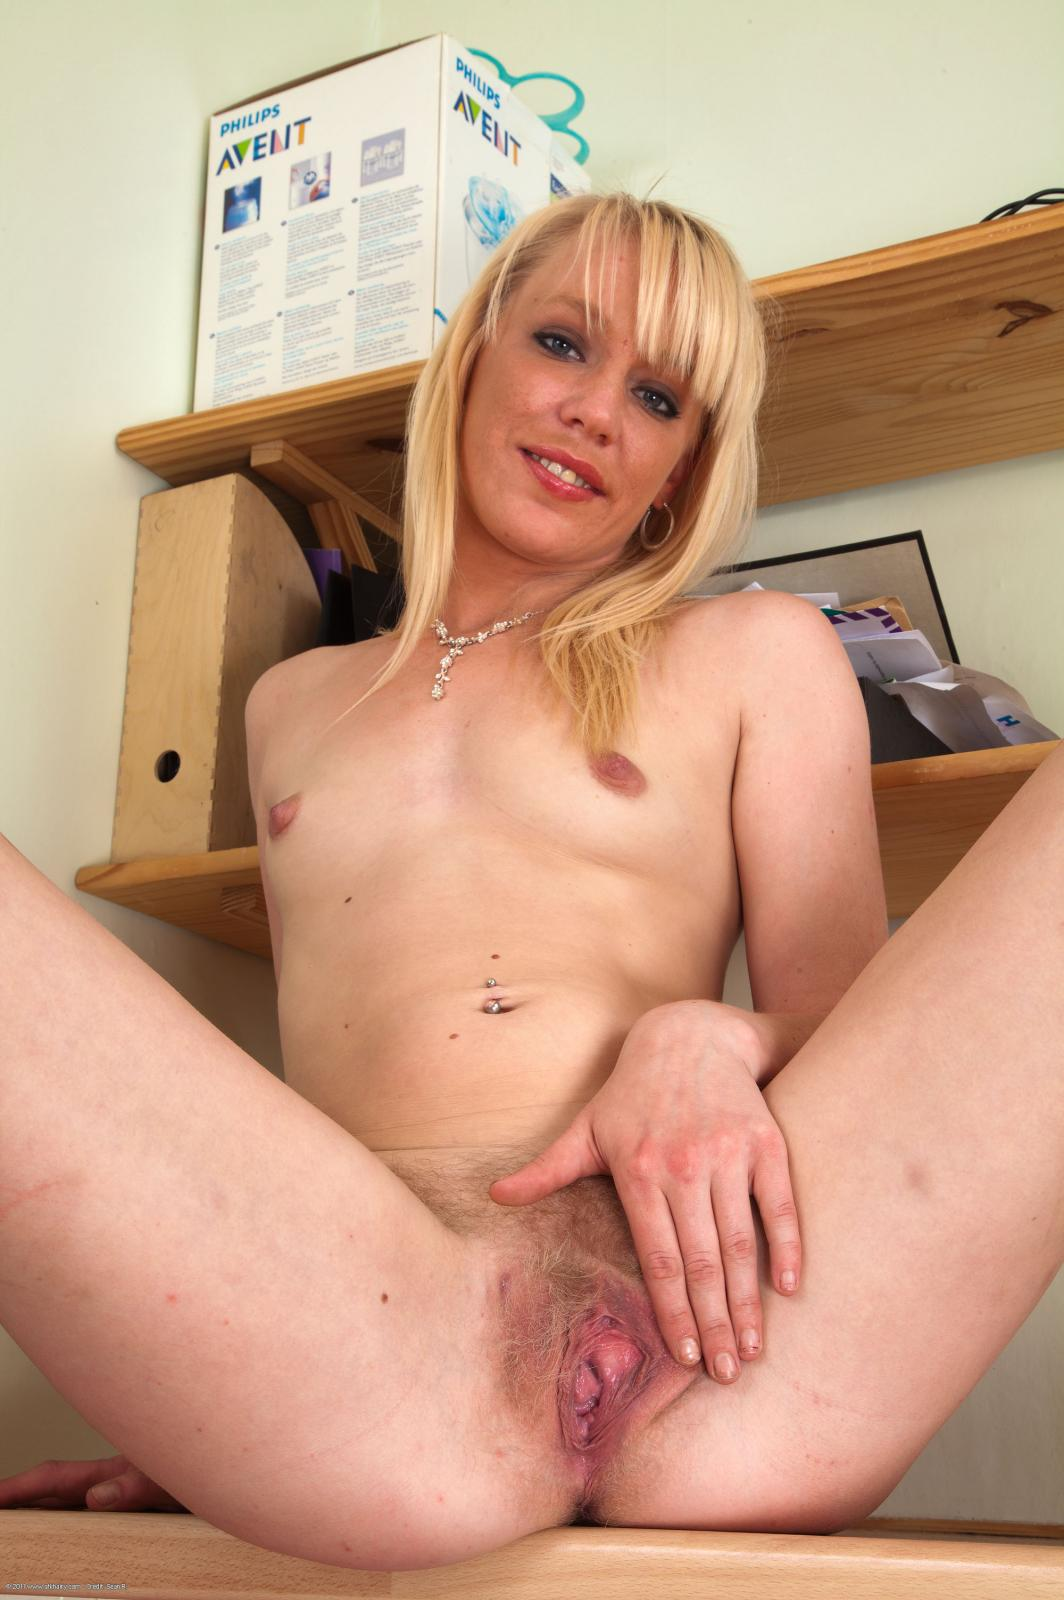 Cassie young gives a great blowjob 5